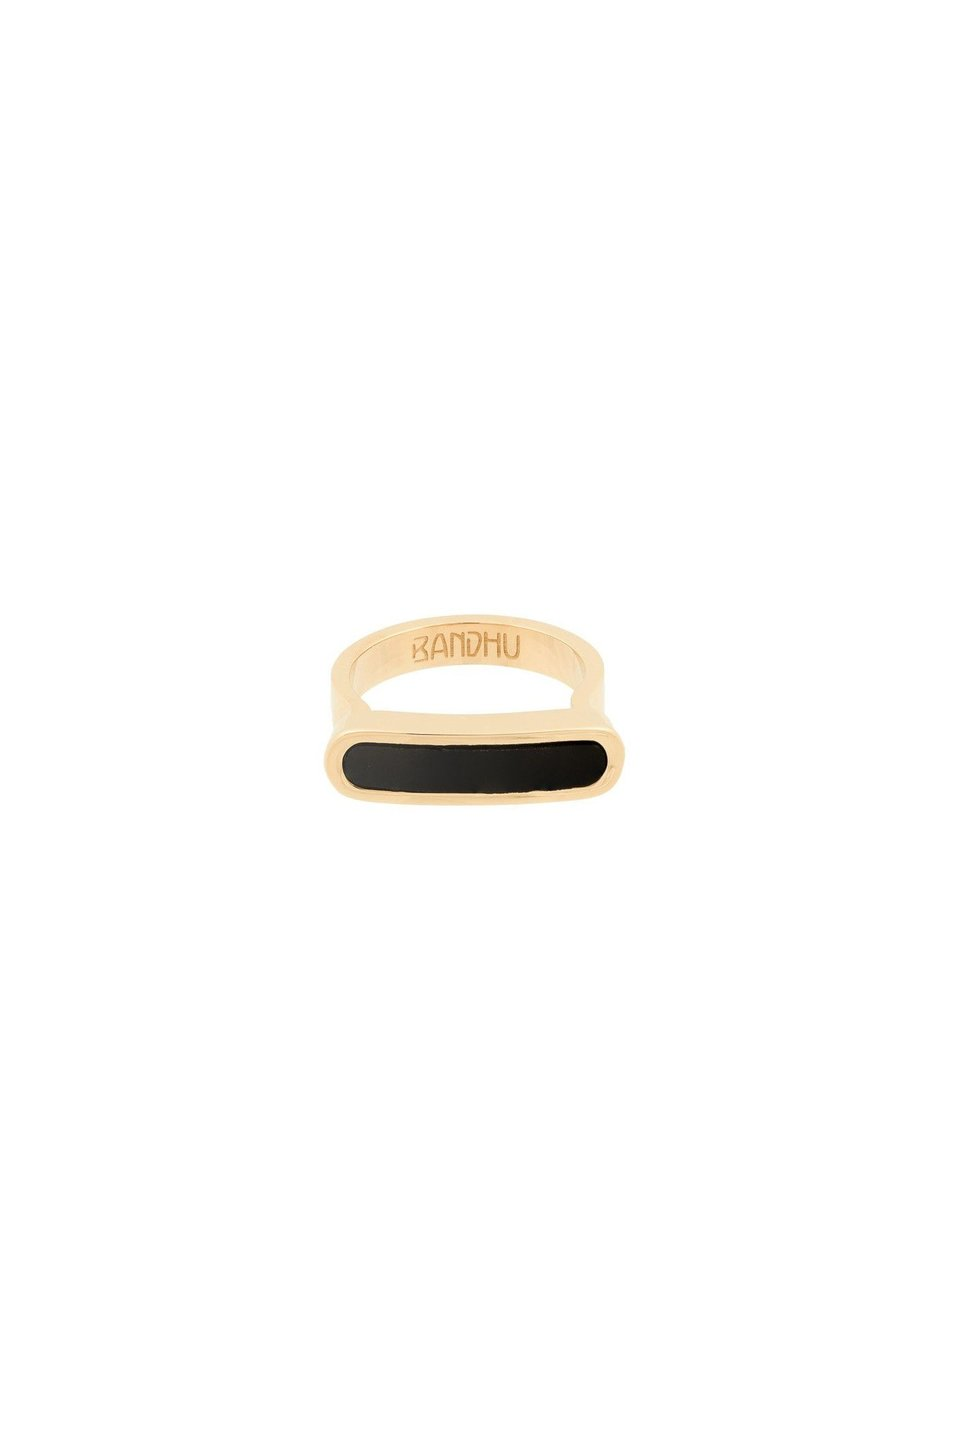 Energy Muse Ring - Gold #1